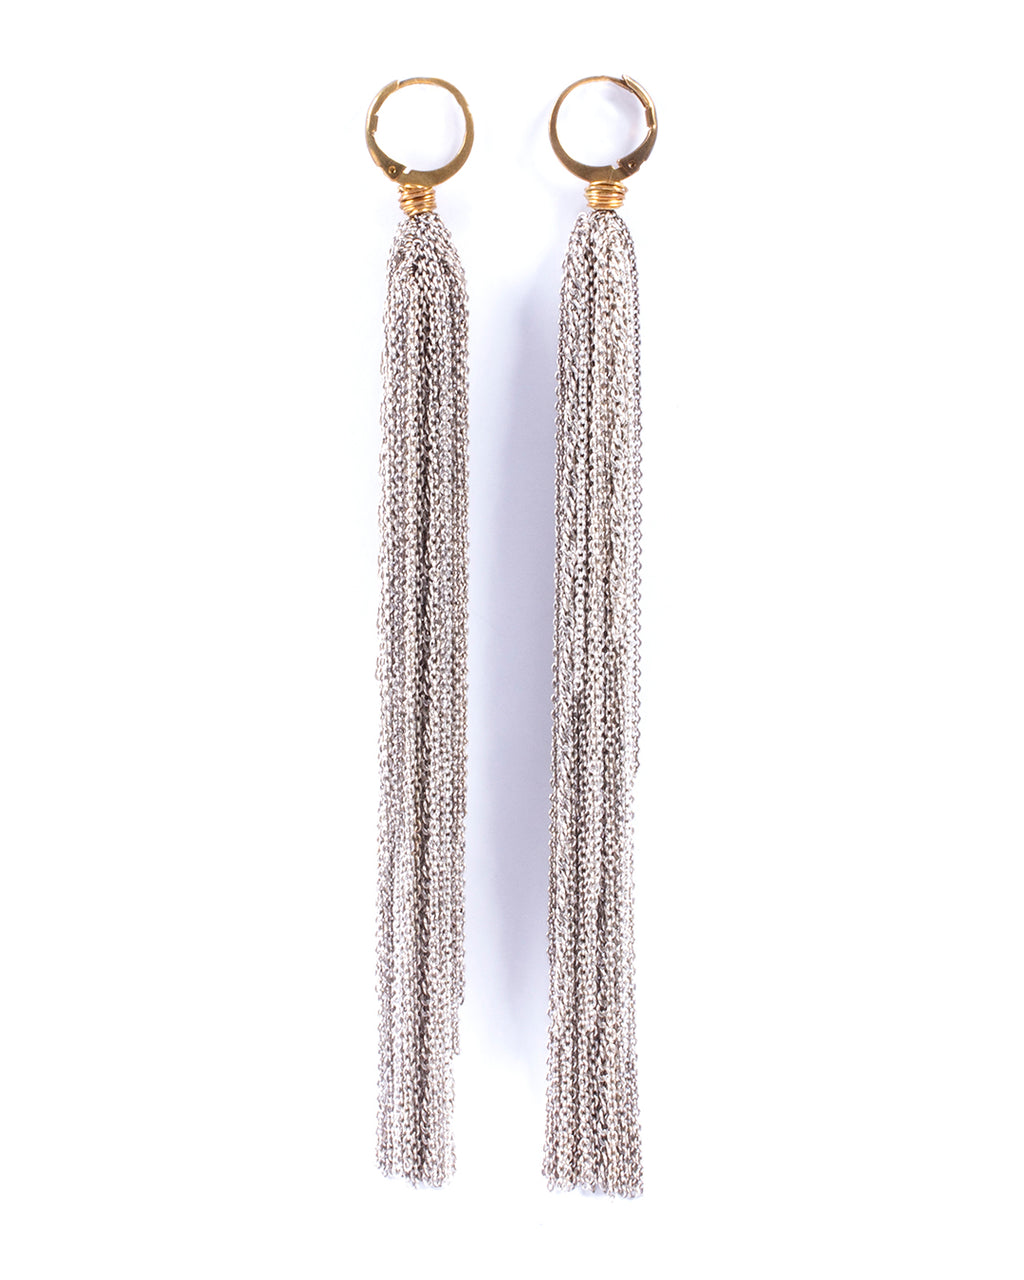 Multi-strand dangling earrings – 001